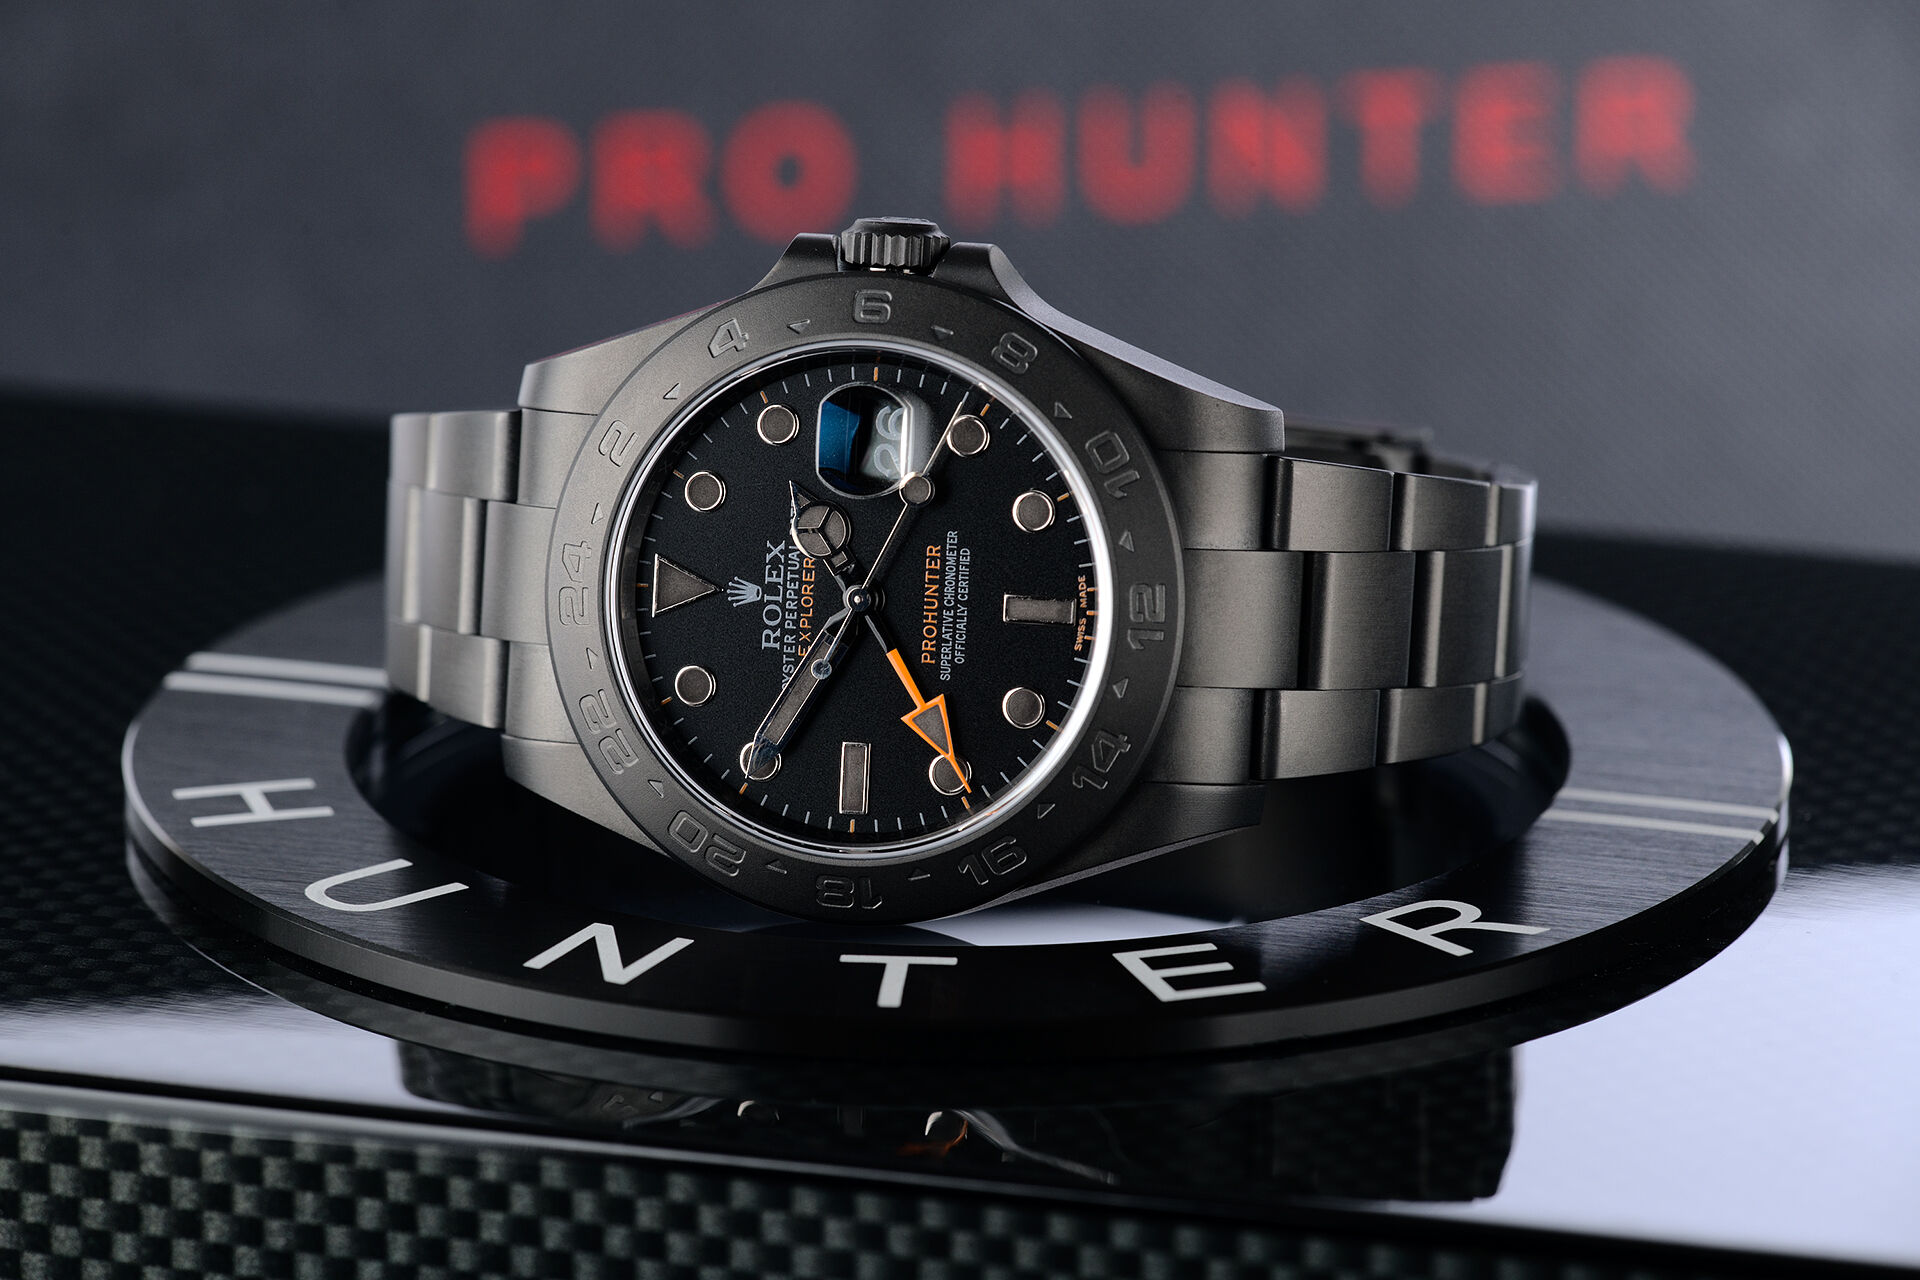 ref 216570 | Limited to 100 Pieces | Pro Hunter Explorer II Phantom